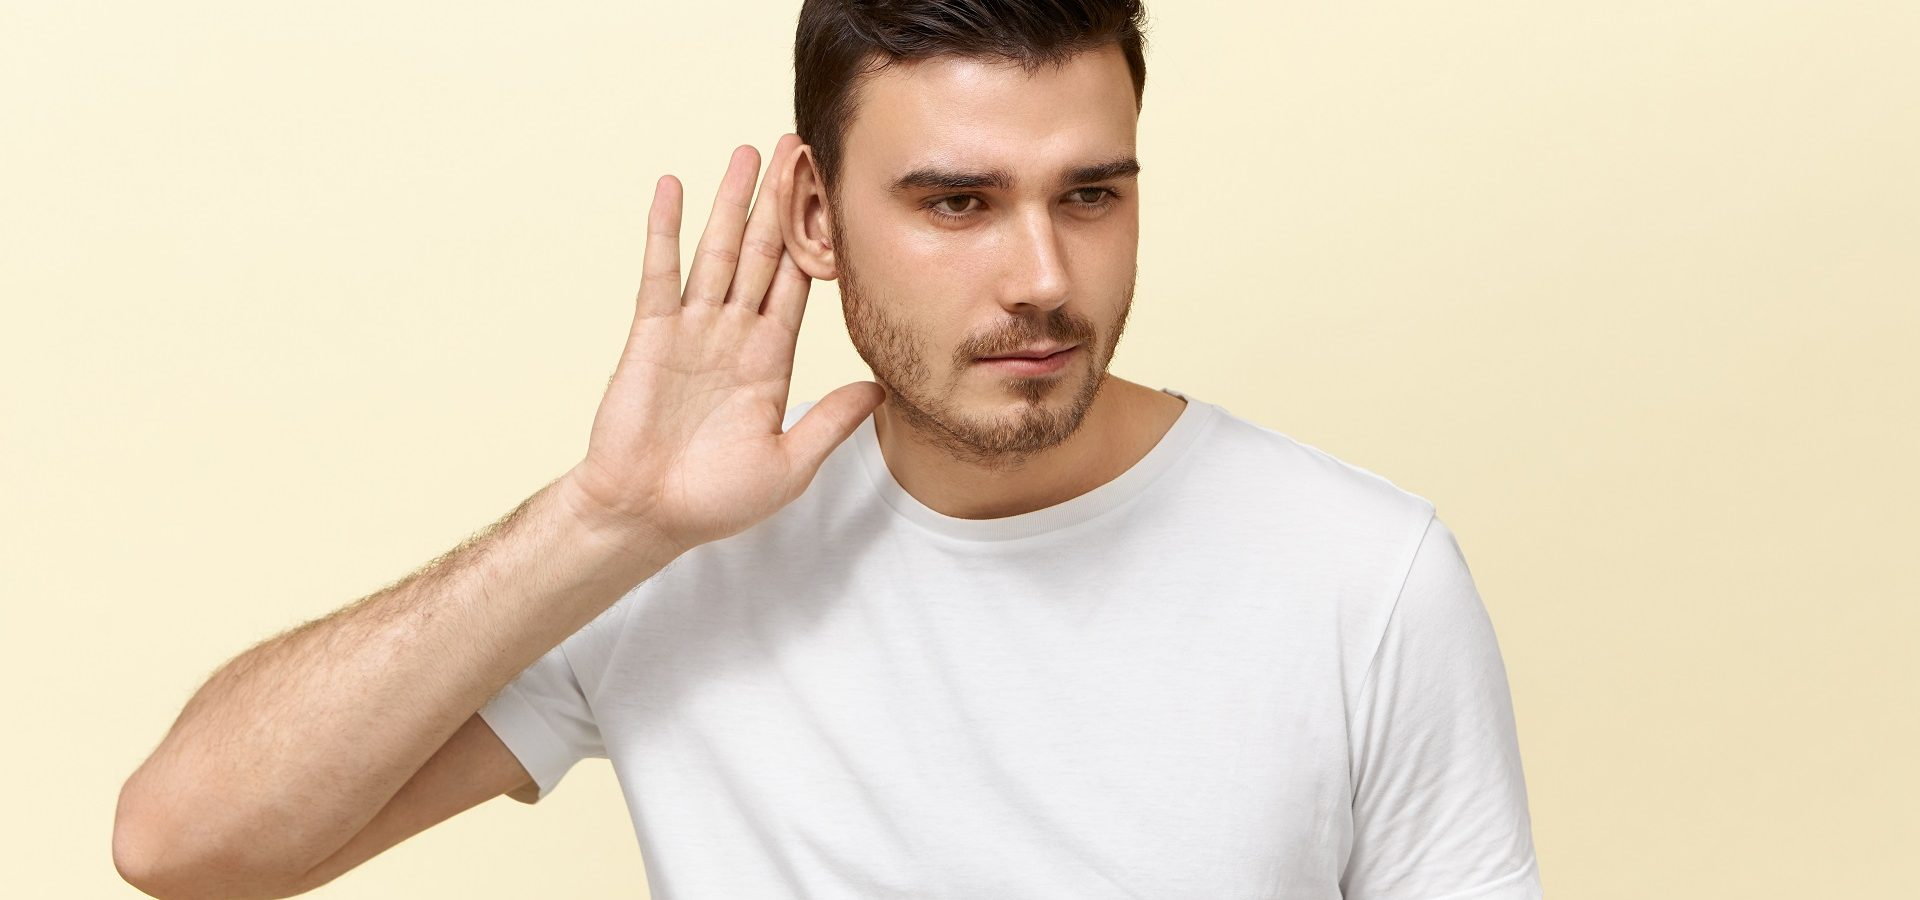 Young man holding his hand up to one ear, suffering from single-sided deafness